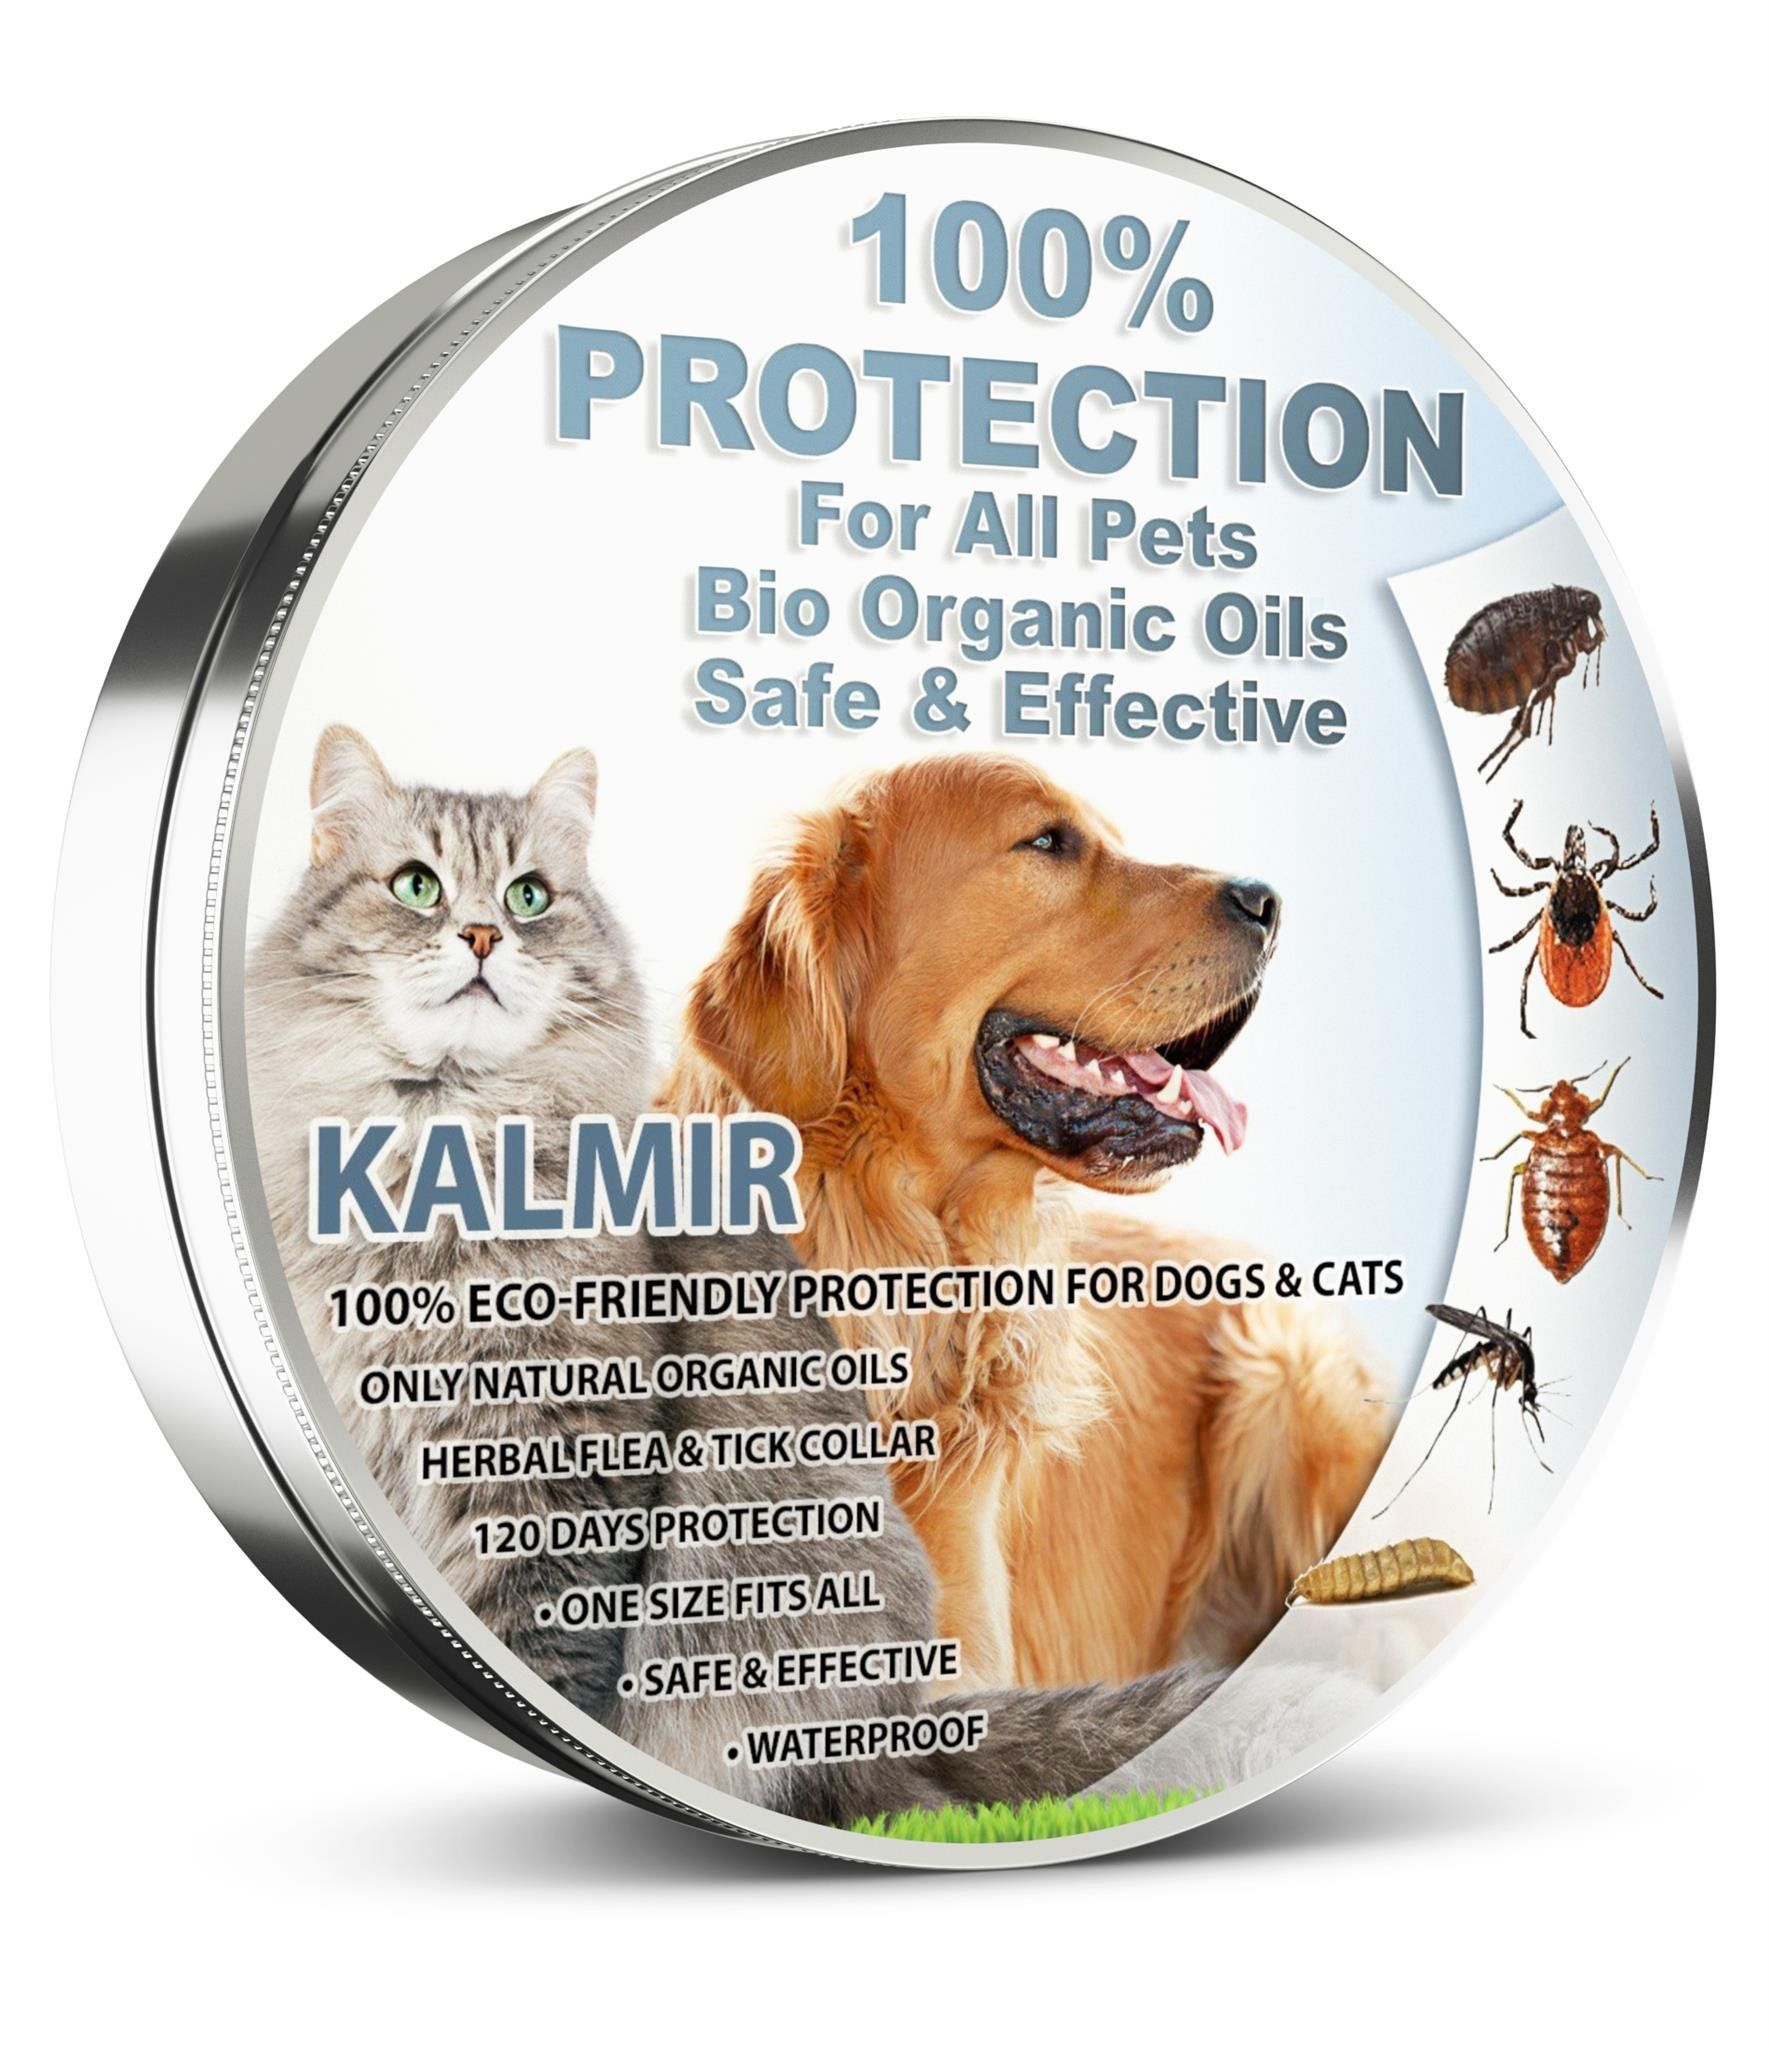 Flea Tick Collar Prevention Control For Dogs Cats Natural Herbal Nontoxic Adjustable Flea Collar Waterproof Protection Cat Fleas Small Pet Supplies Small Pets